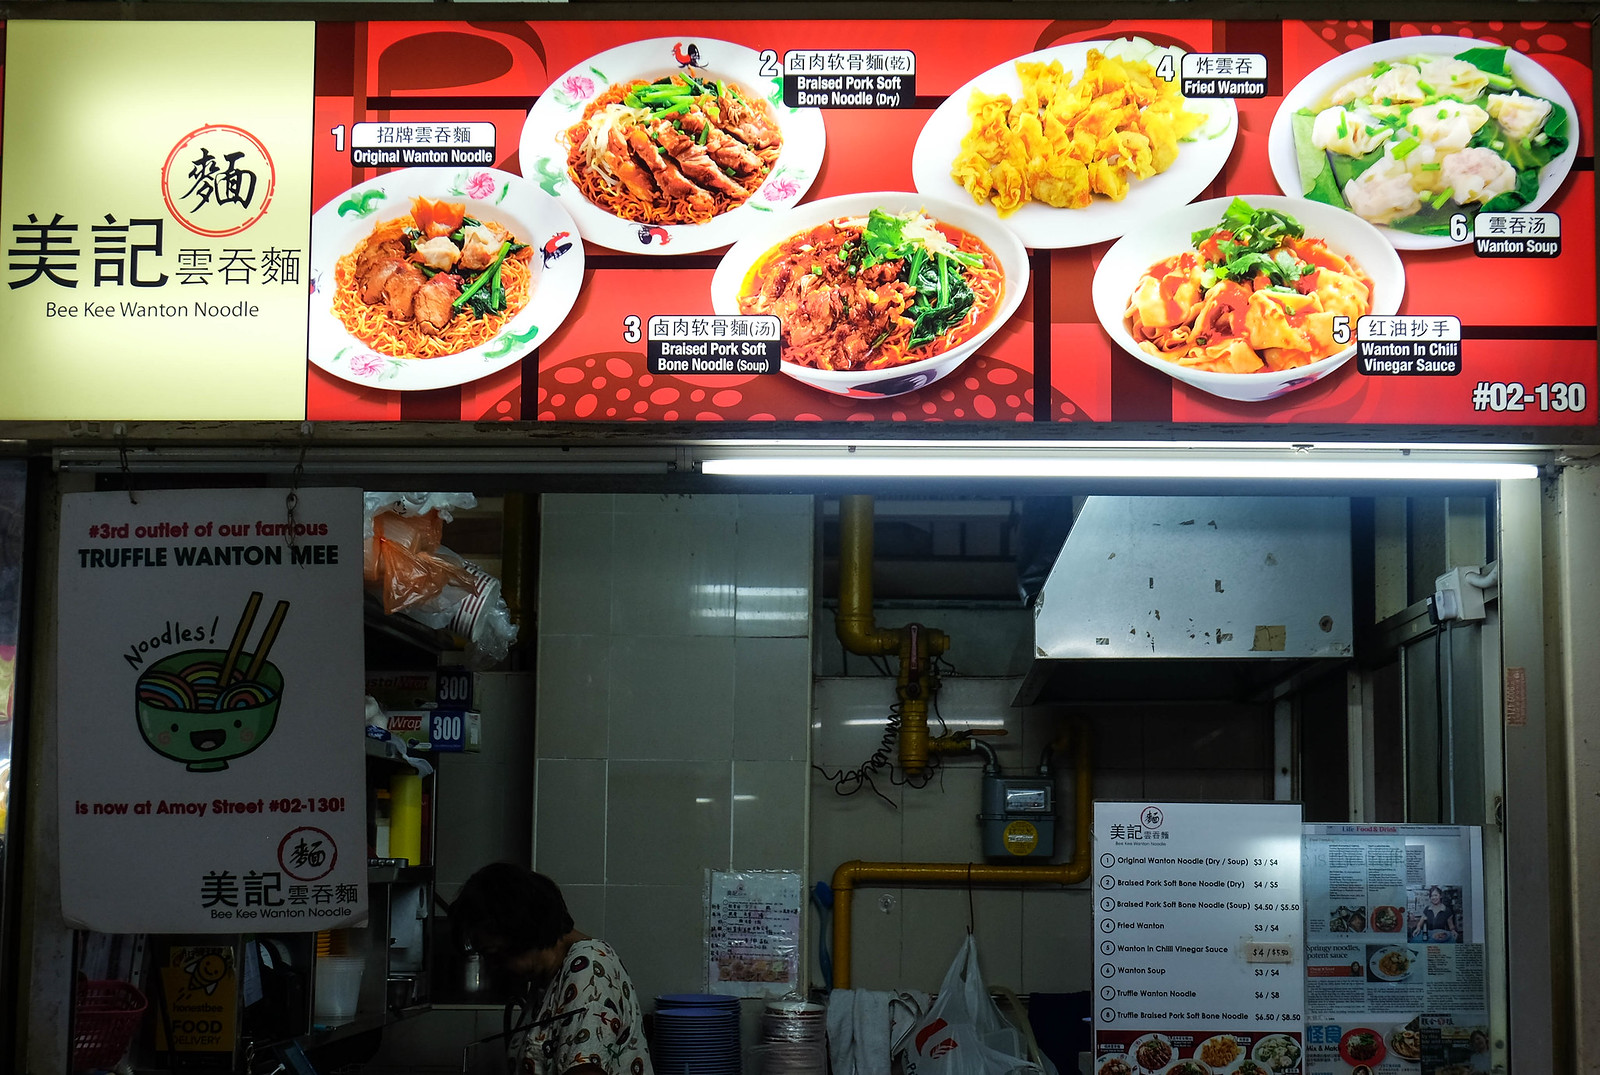 amoy street food centre Truffle mee stall